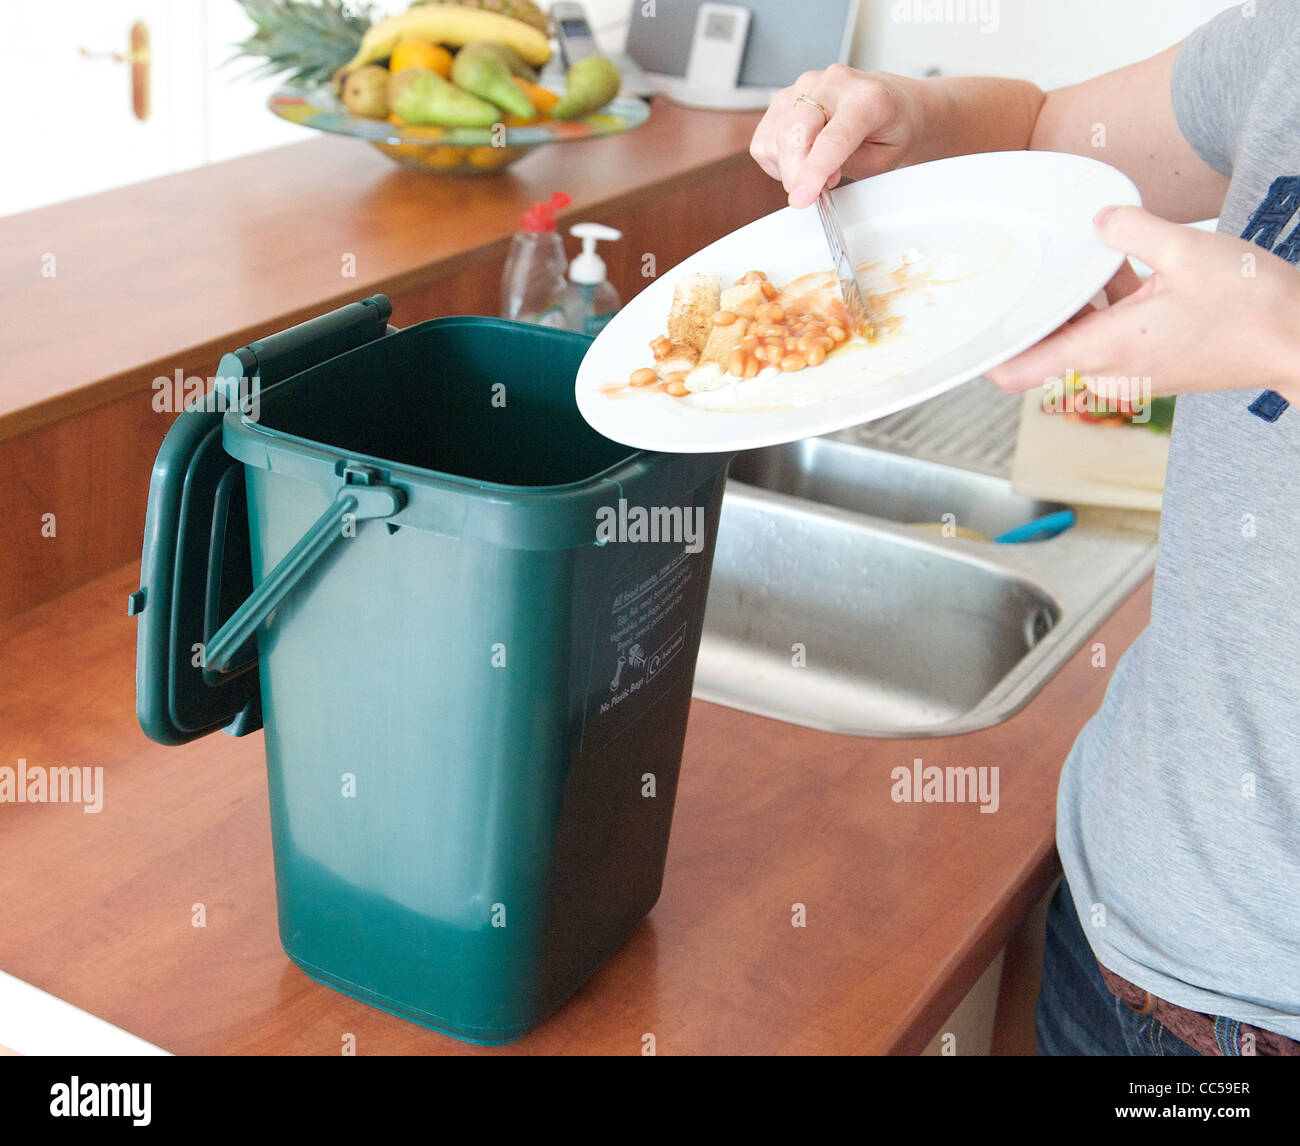 Food Waste Caddy Stock Photos & Food Waste Caddy Stock Images - Alamy